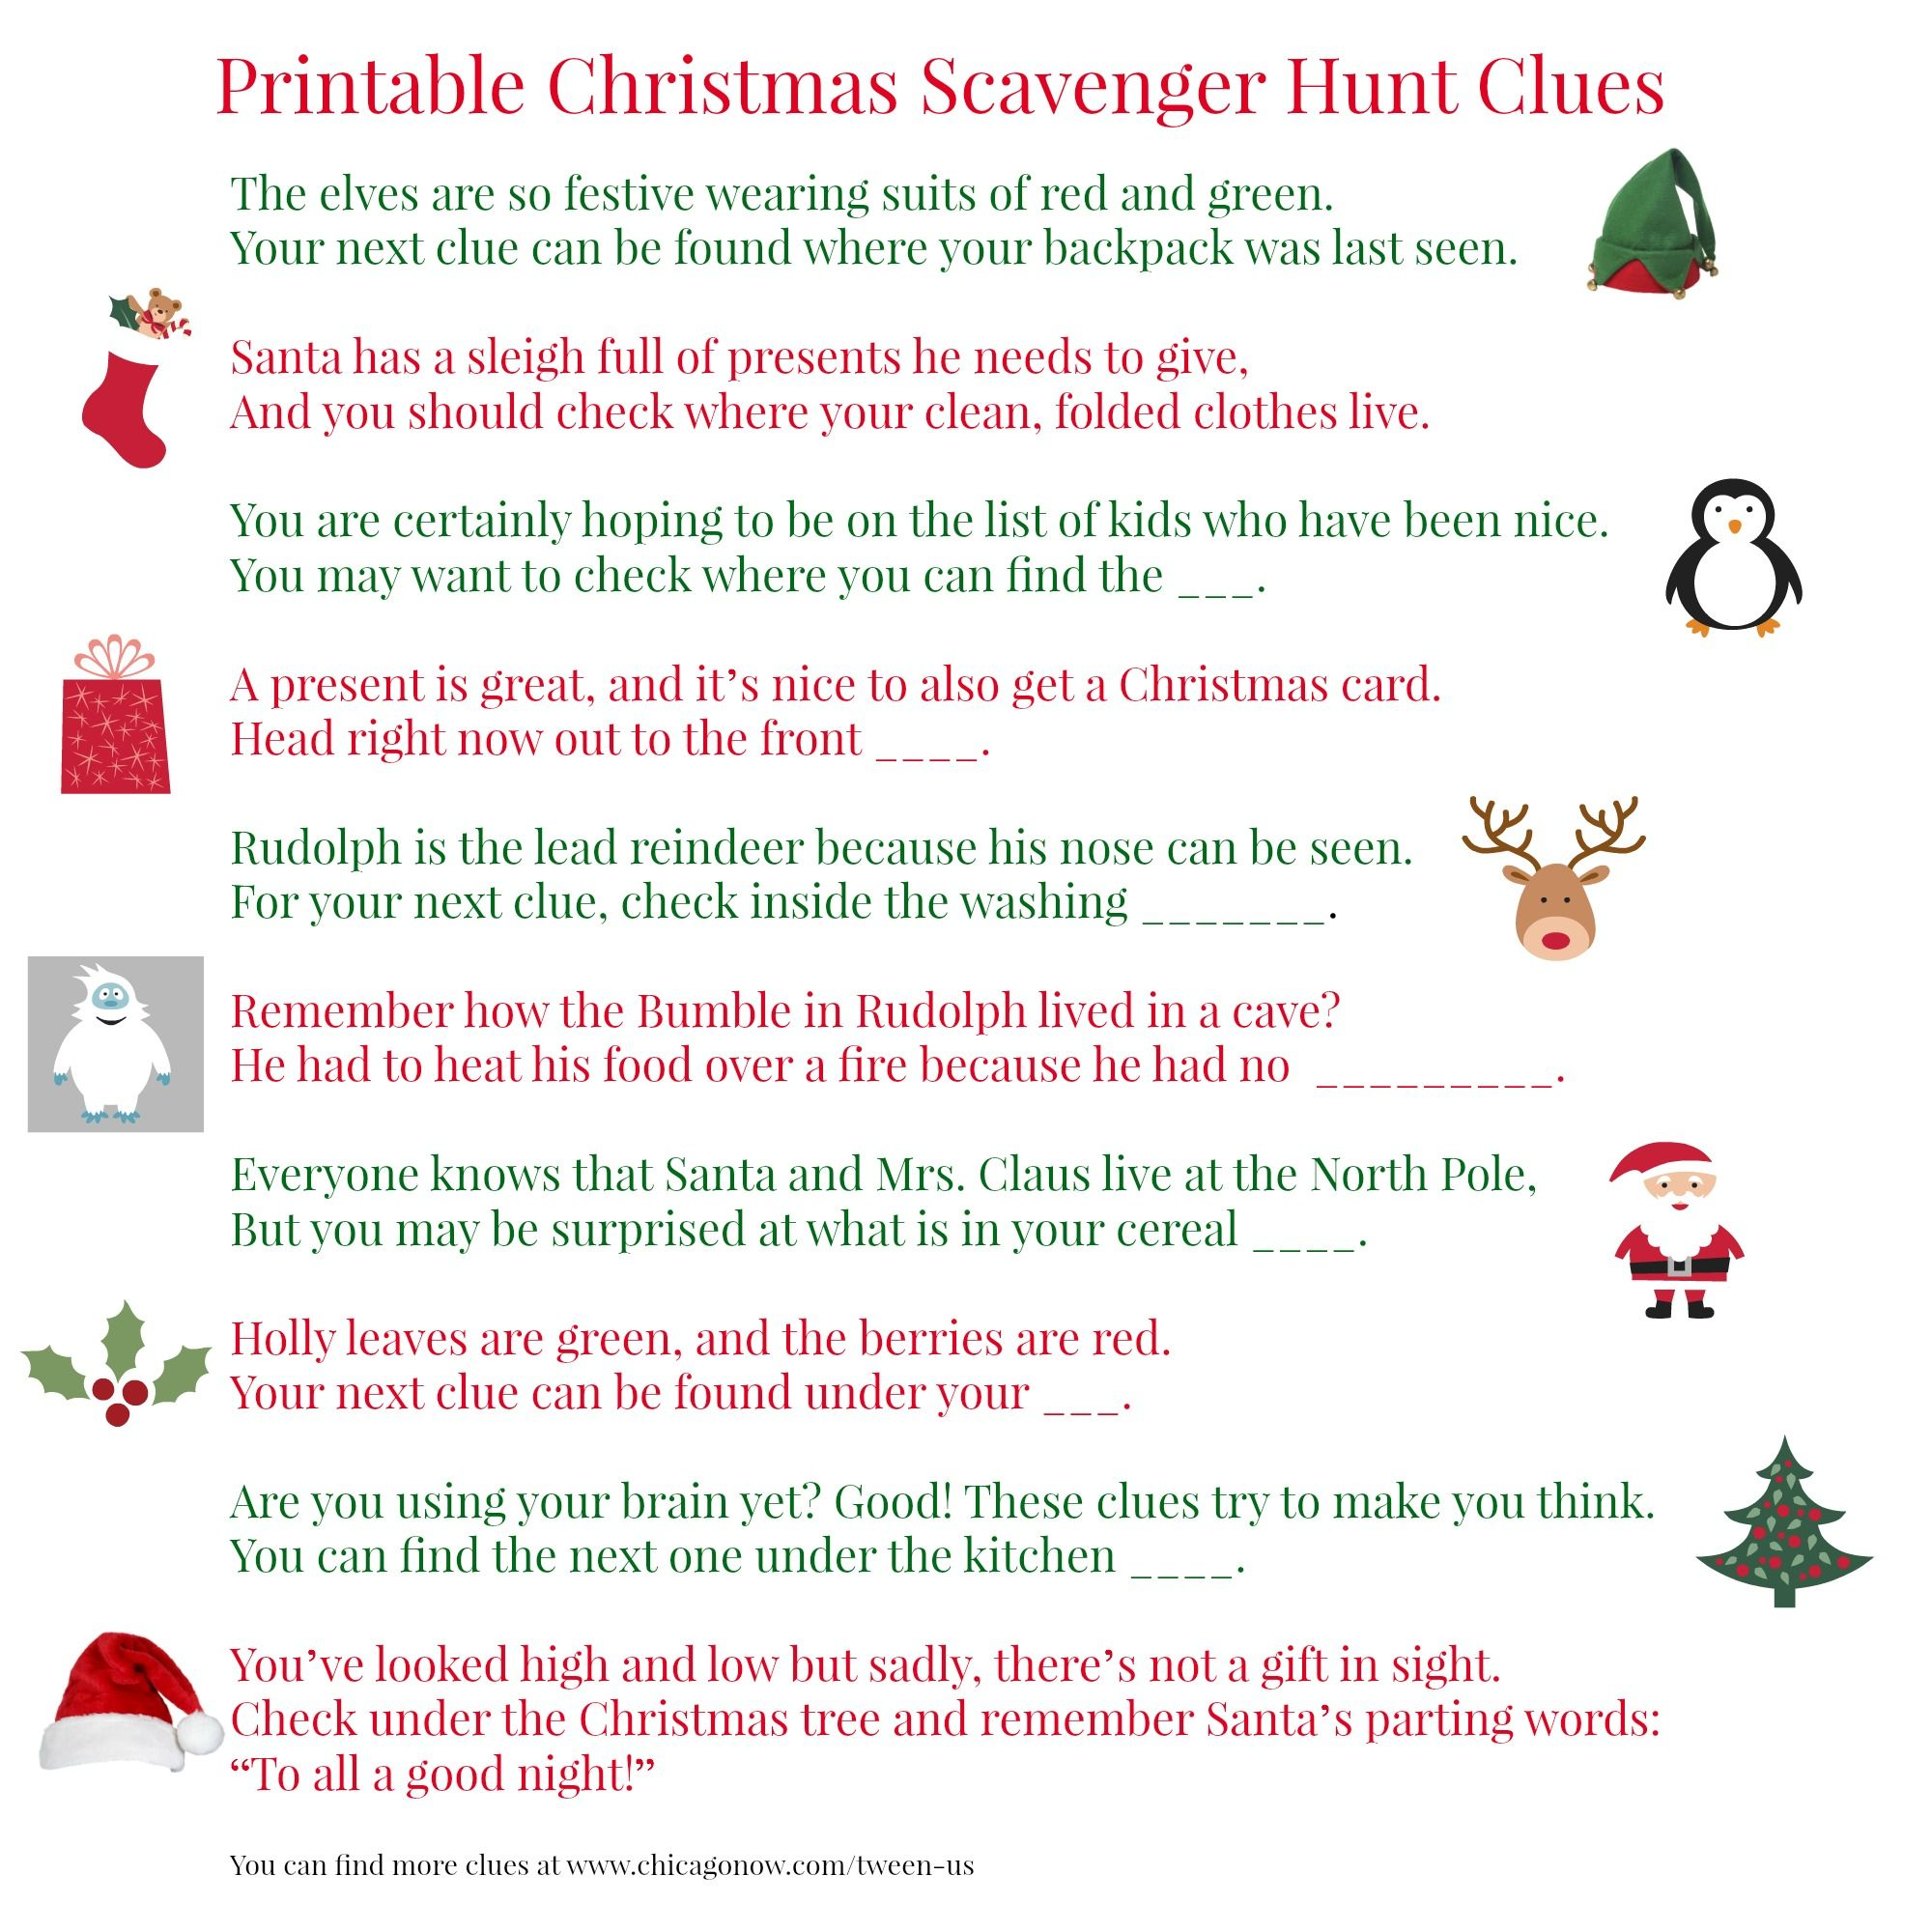 Printable Christmas scavenger hunt clues for present